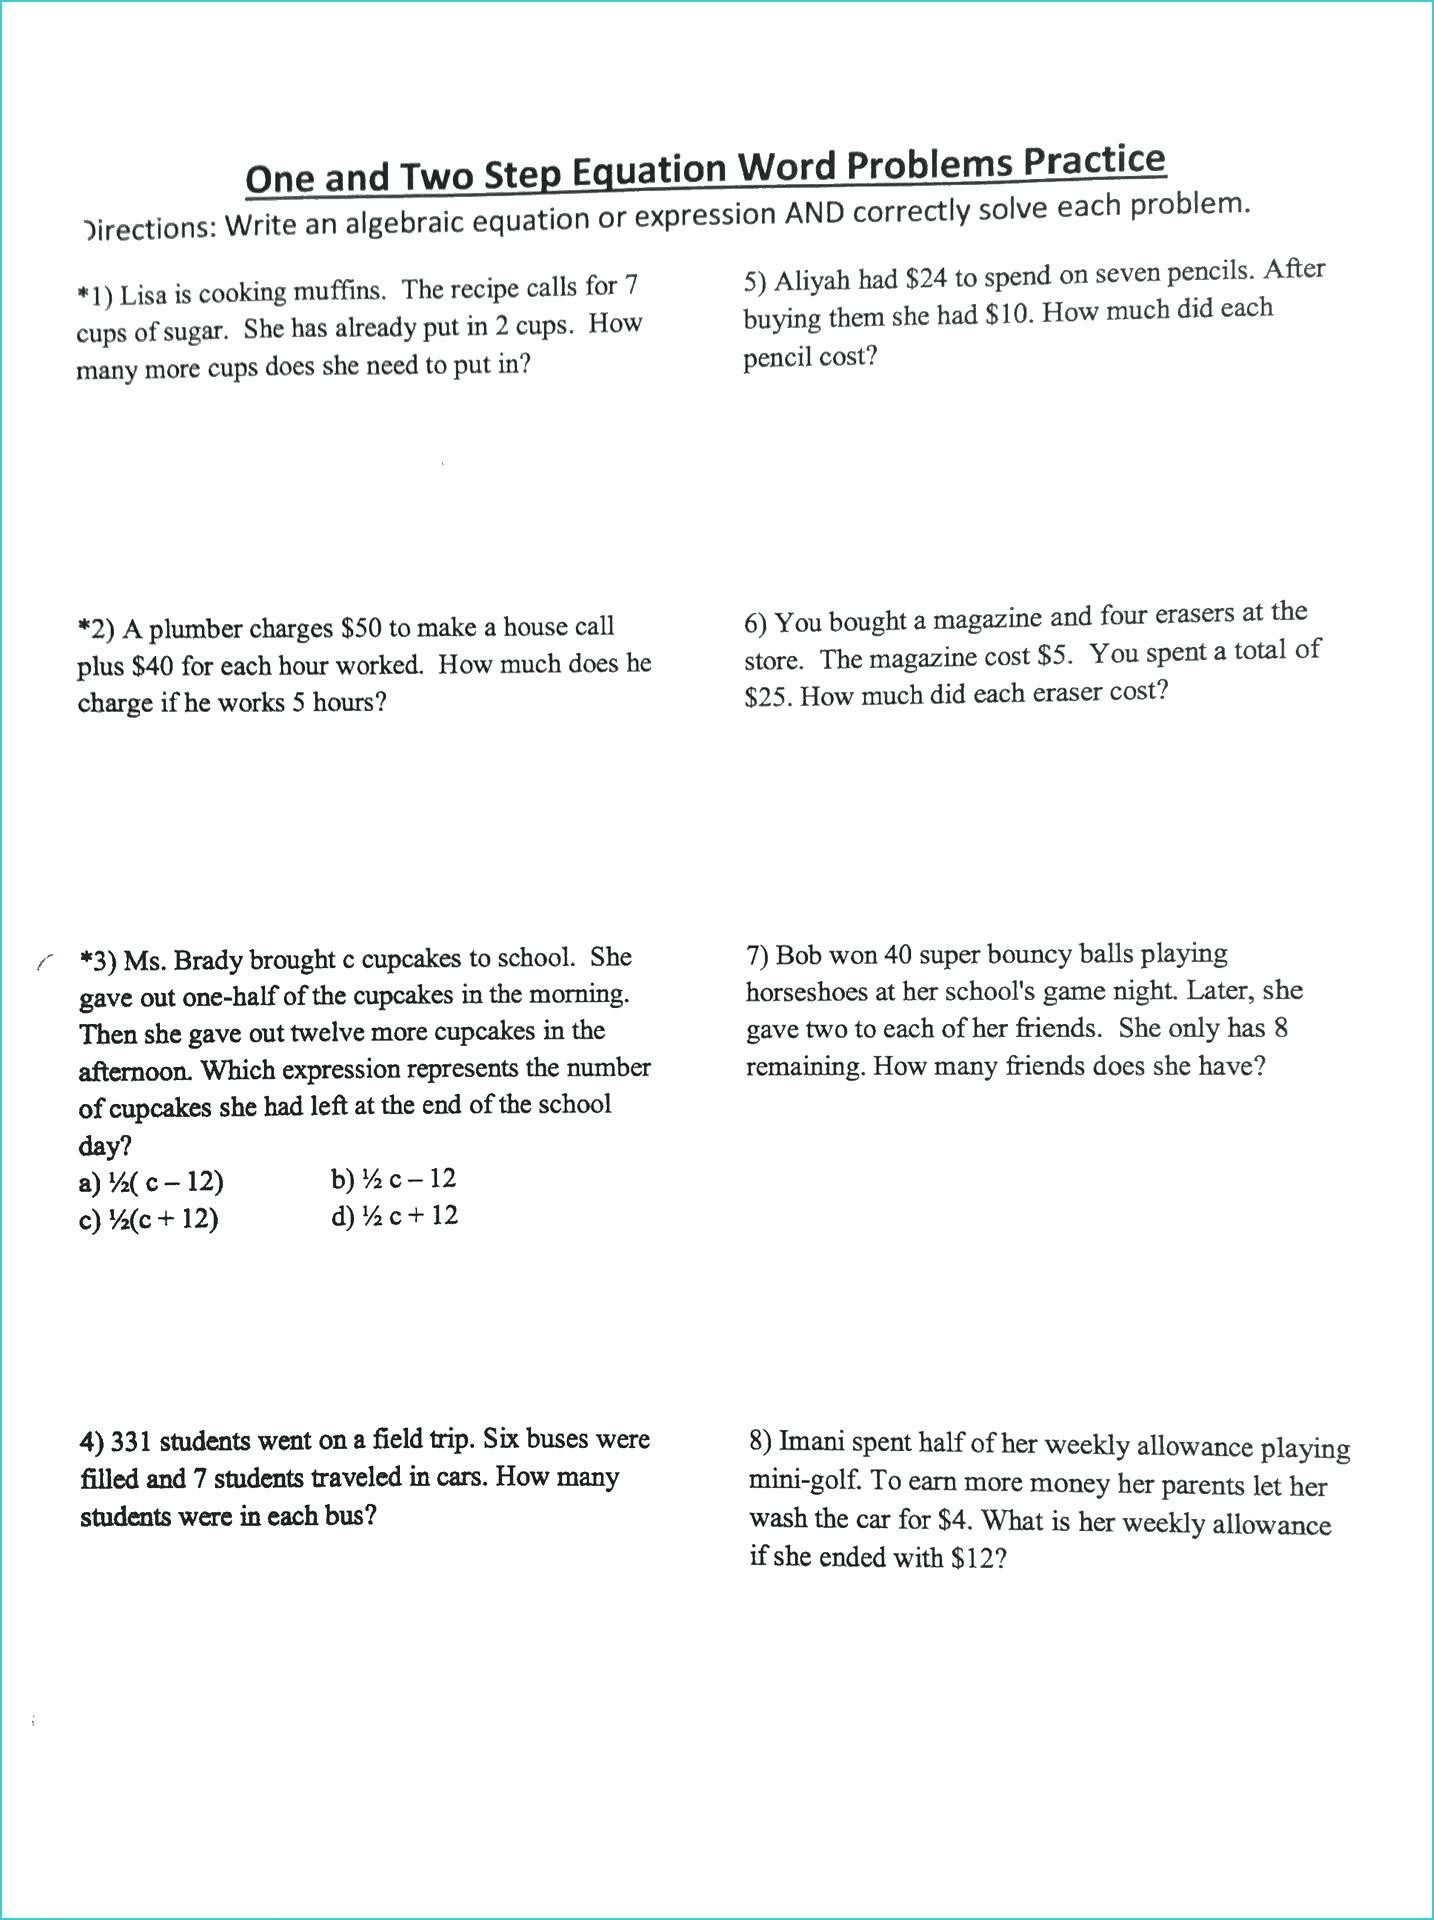 Adding and Subtracting Integers Word Problems Worksheet - All About  Worksheet   Word problem worksheets [ 1920 x 1434 Pixel ]